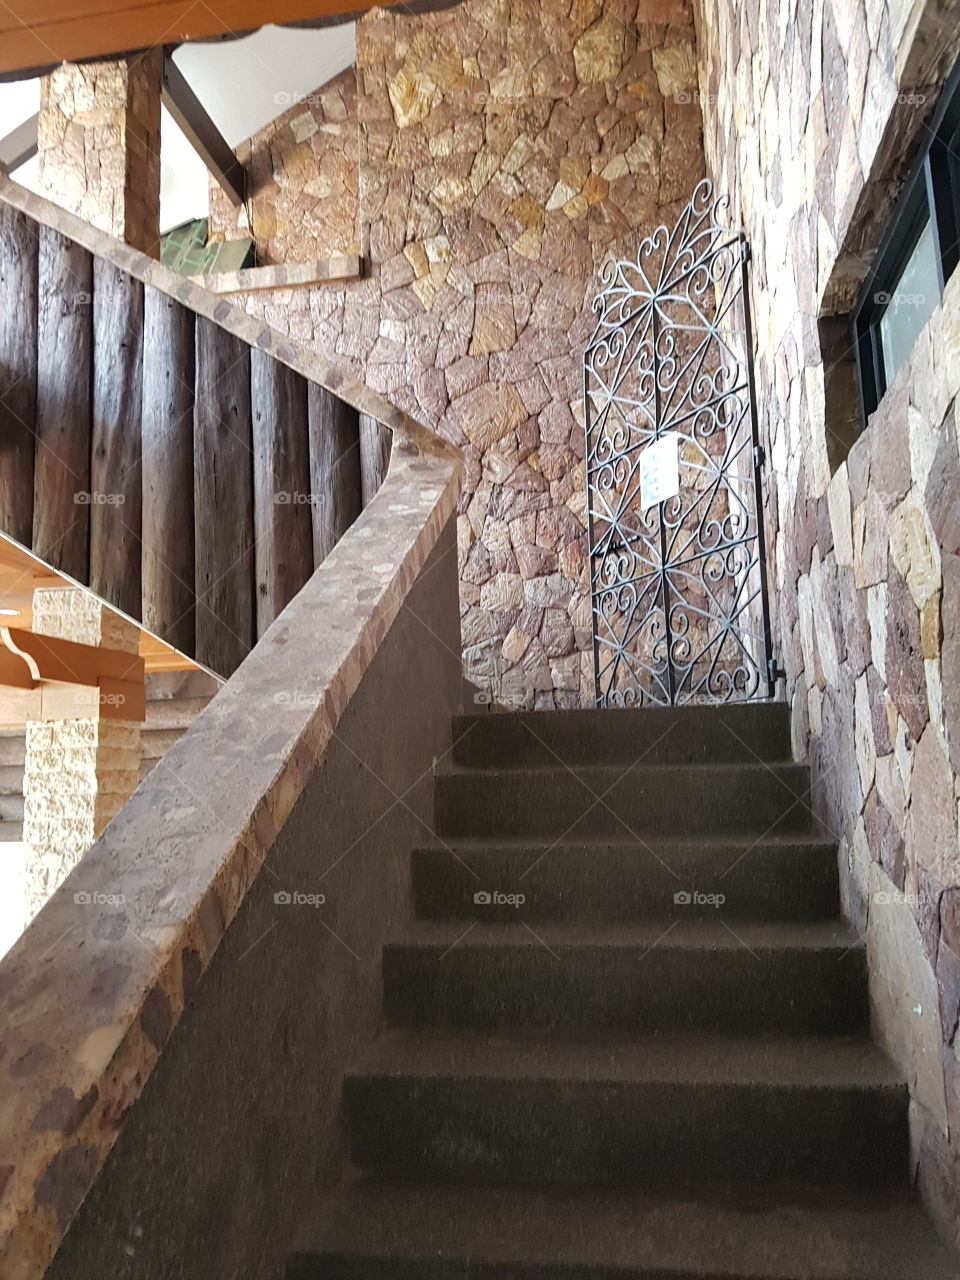 Stairs: How do you see it? Downward stairs? Upward stairs?